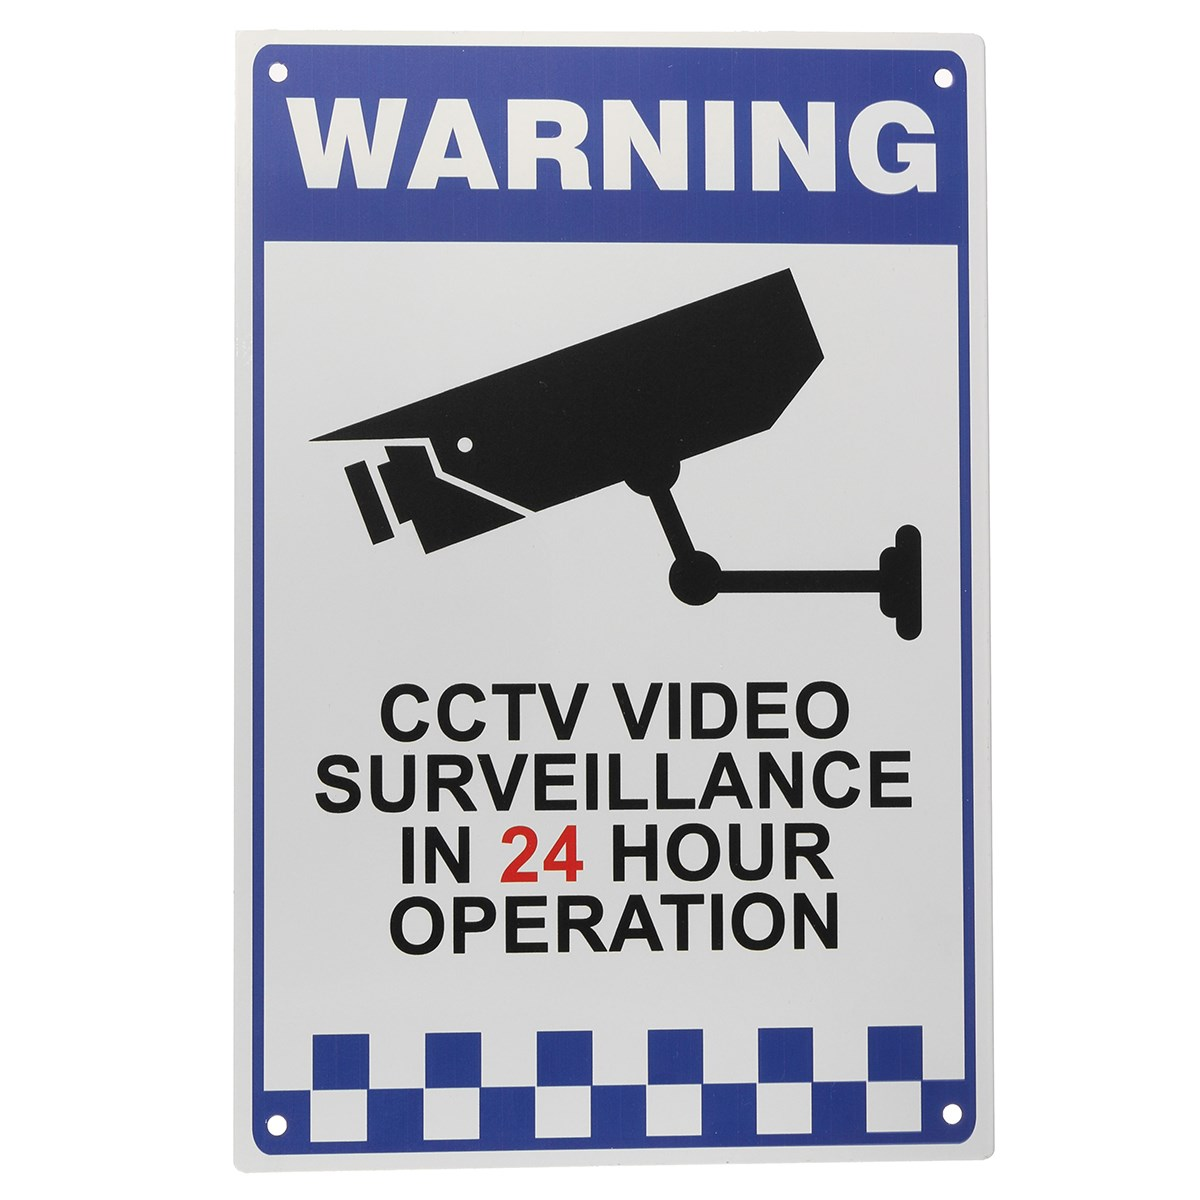 Safurance CCTV Warning Security Video Surveillance Camera Safety Security Sign Reflactive Metal new safurance 10pcs lot waterproof sunscreen pvc home cctv video surveillance security camera alarm sticker warning decal signs